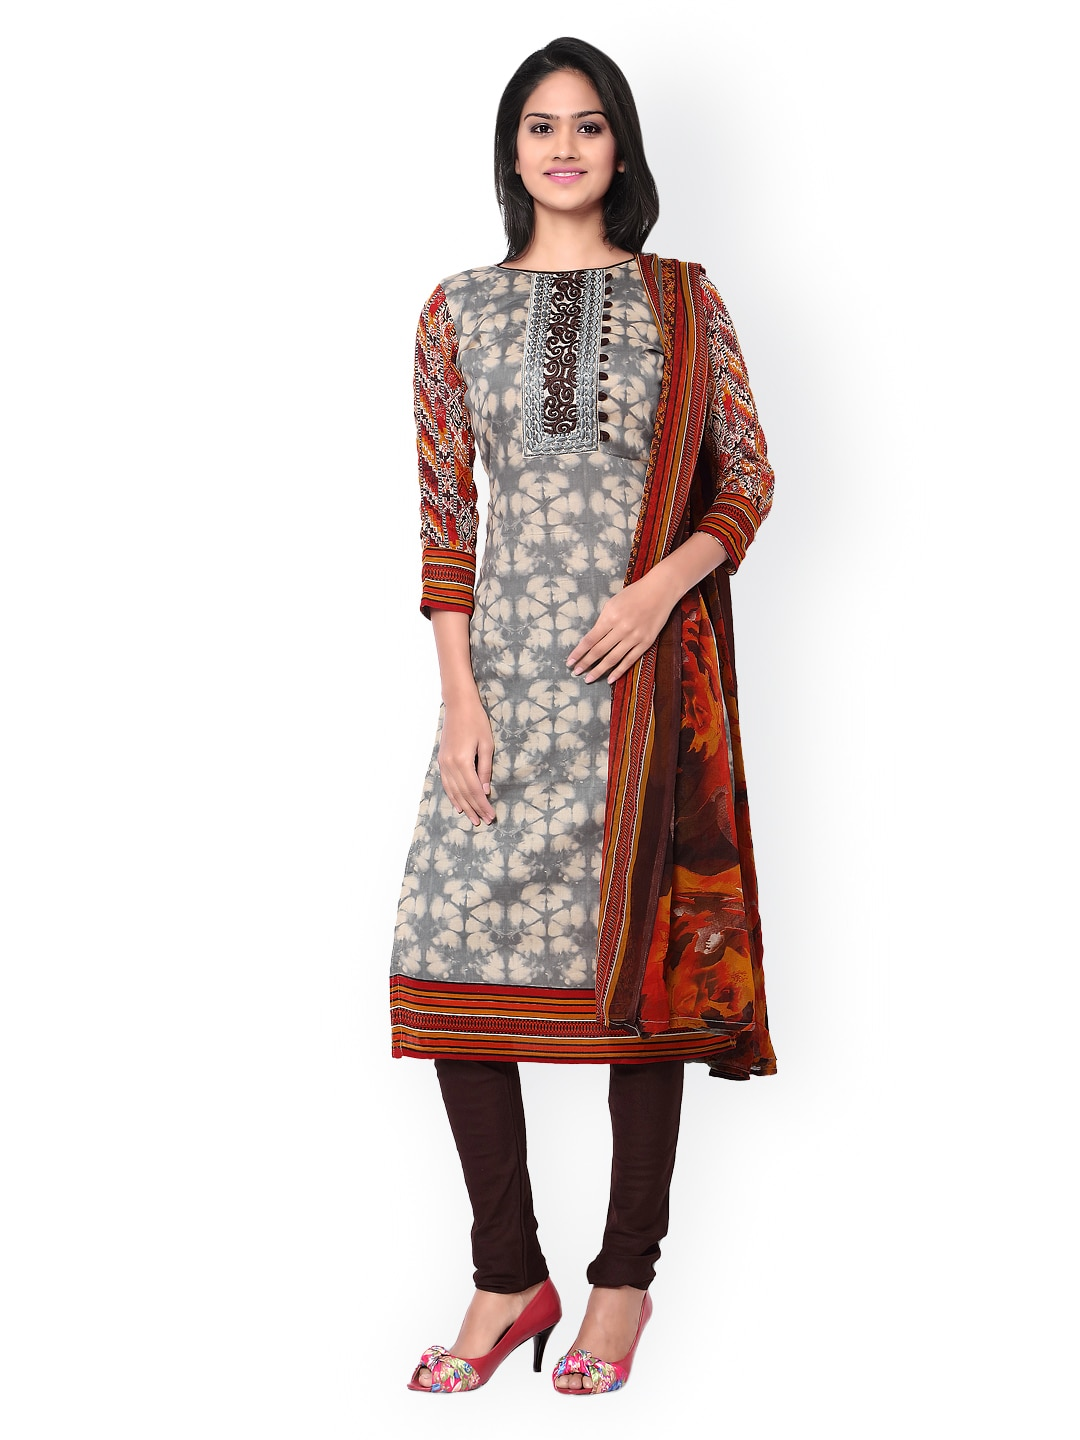 Inddus Cream-Coloured & Brown Tie-Dyed Cotton Unstitched Dress Material image